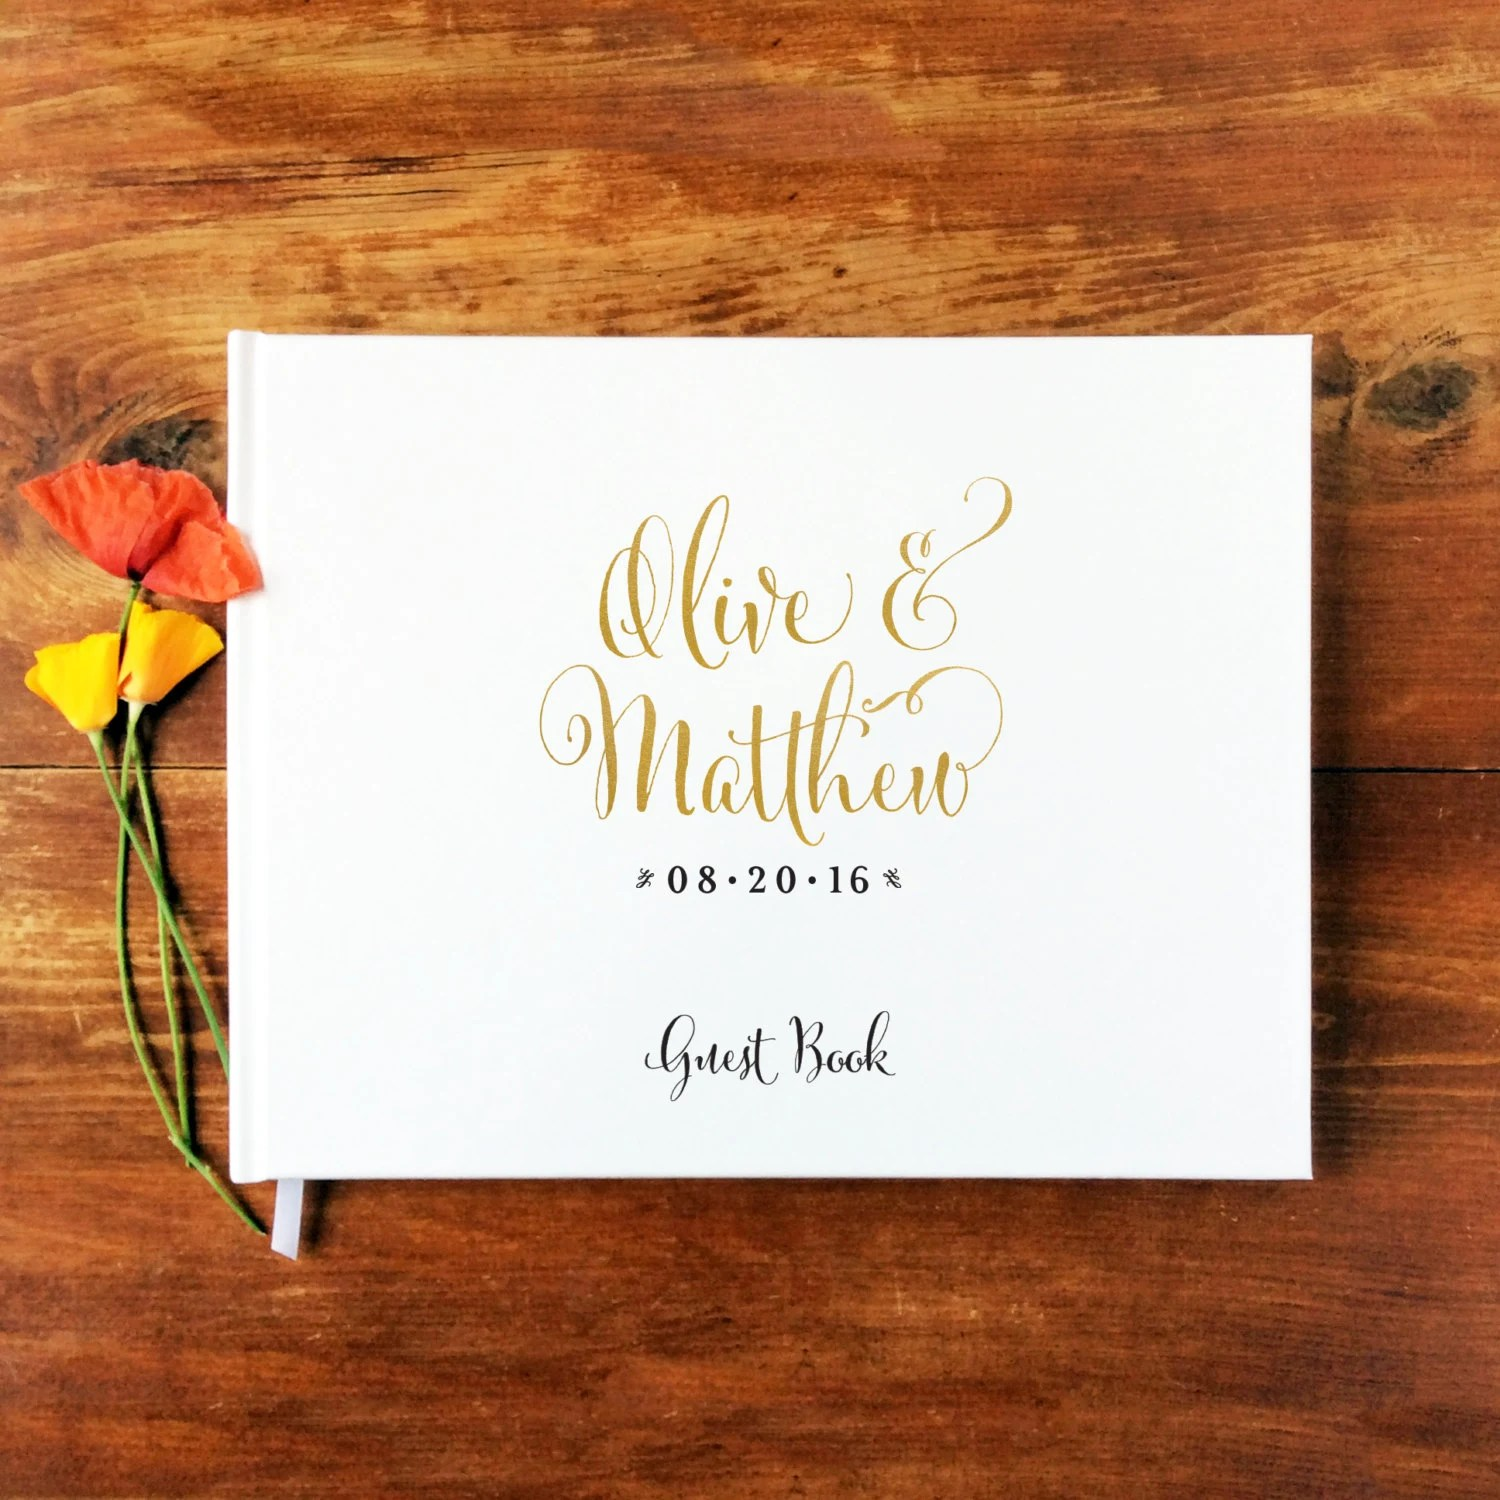 calligraphy wedding photo books Wedding Guest Book Landscape 1 Hardcover Wedding Guestbook Custom Guest Book Personalized Guest Book Gold Calligraphy